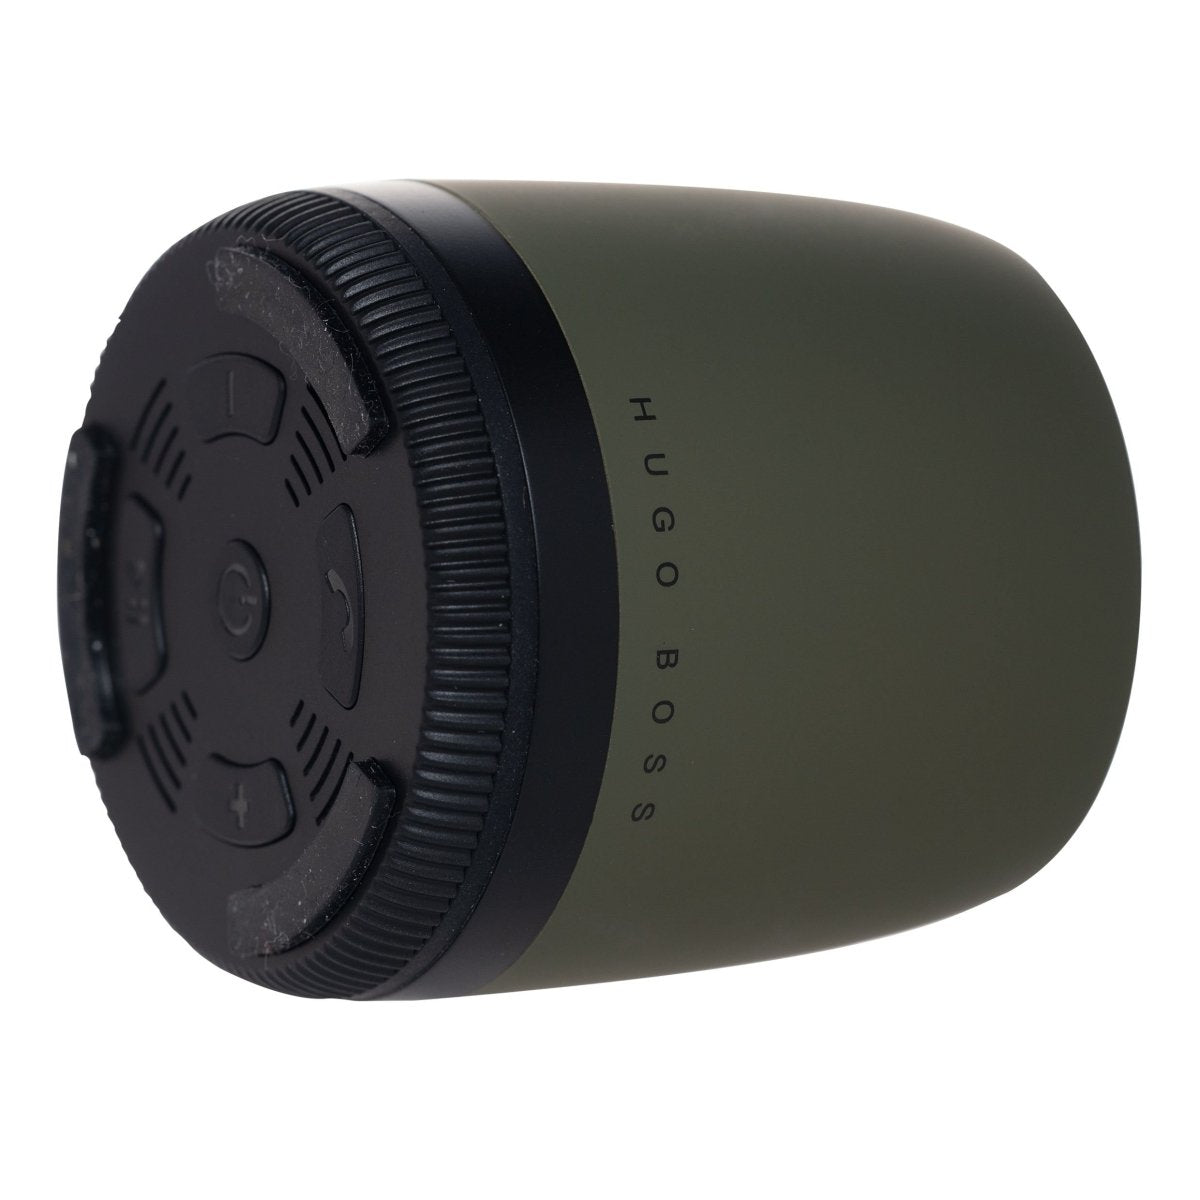 HUGO BOSS HAE007T Gear Matrix Khaki Bluetooth Speaker - Κοσμηματοπωλείο Goldy